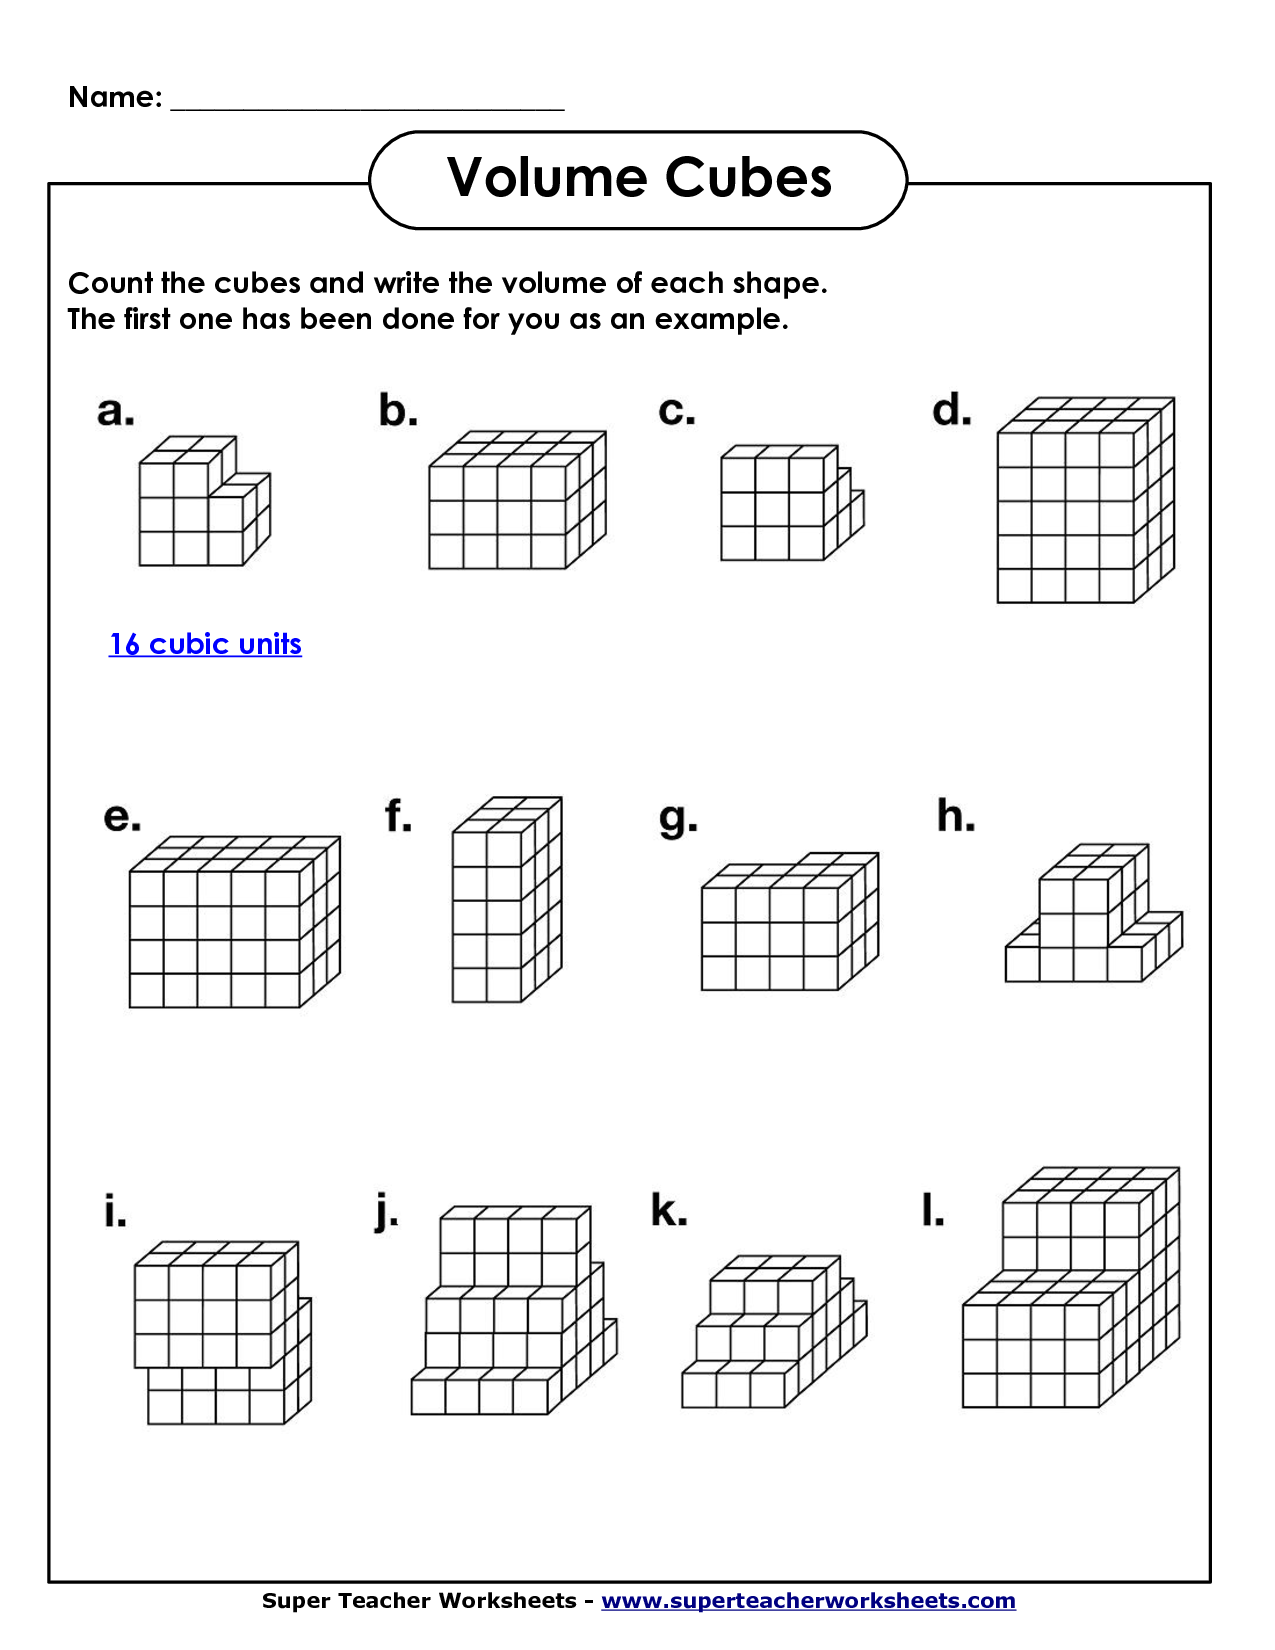 Worksheets Calculating Volume Worksheets 5th grade math activities and the ojays on pinterest volume geometry with cubic units pdf